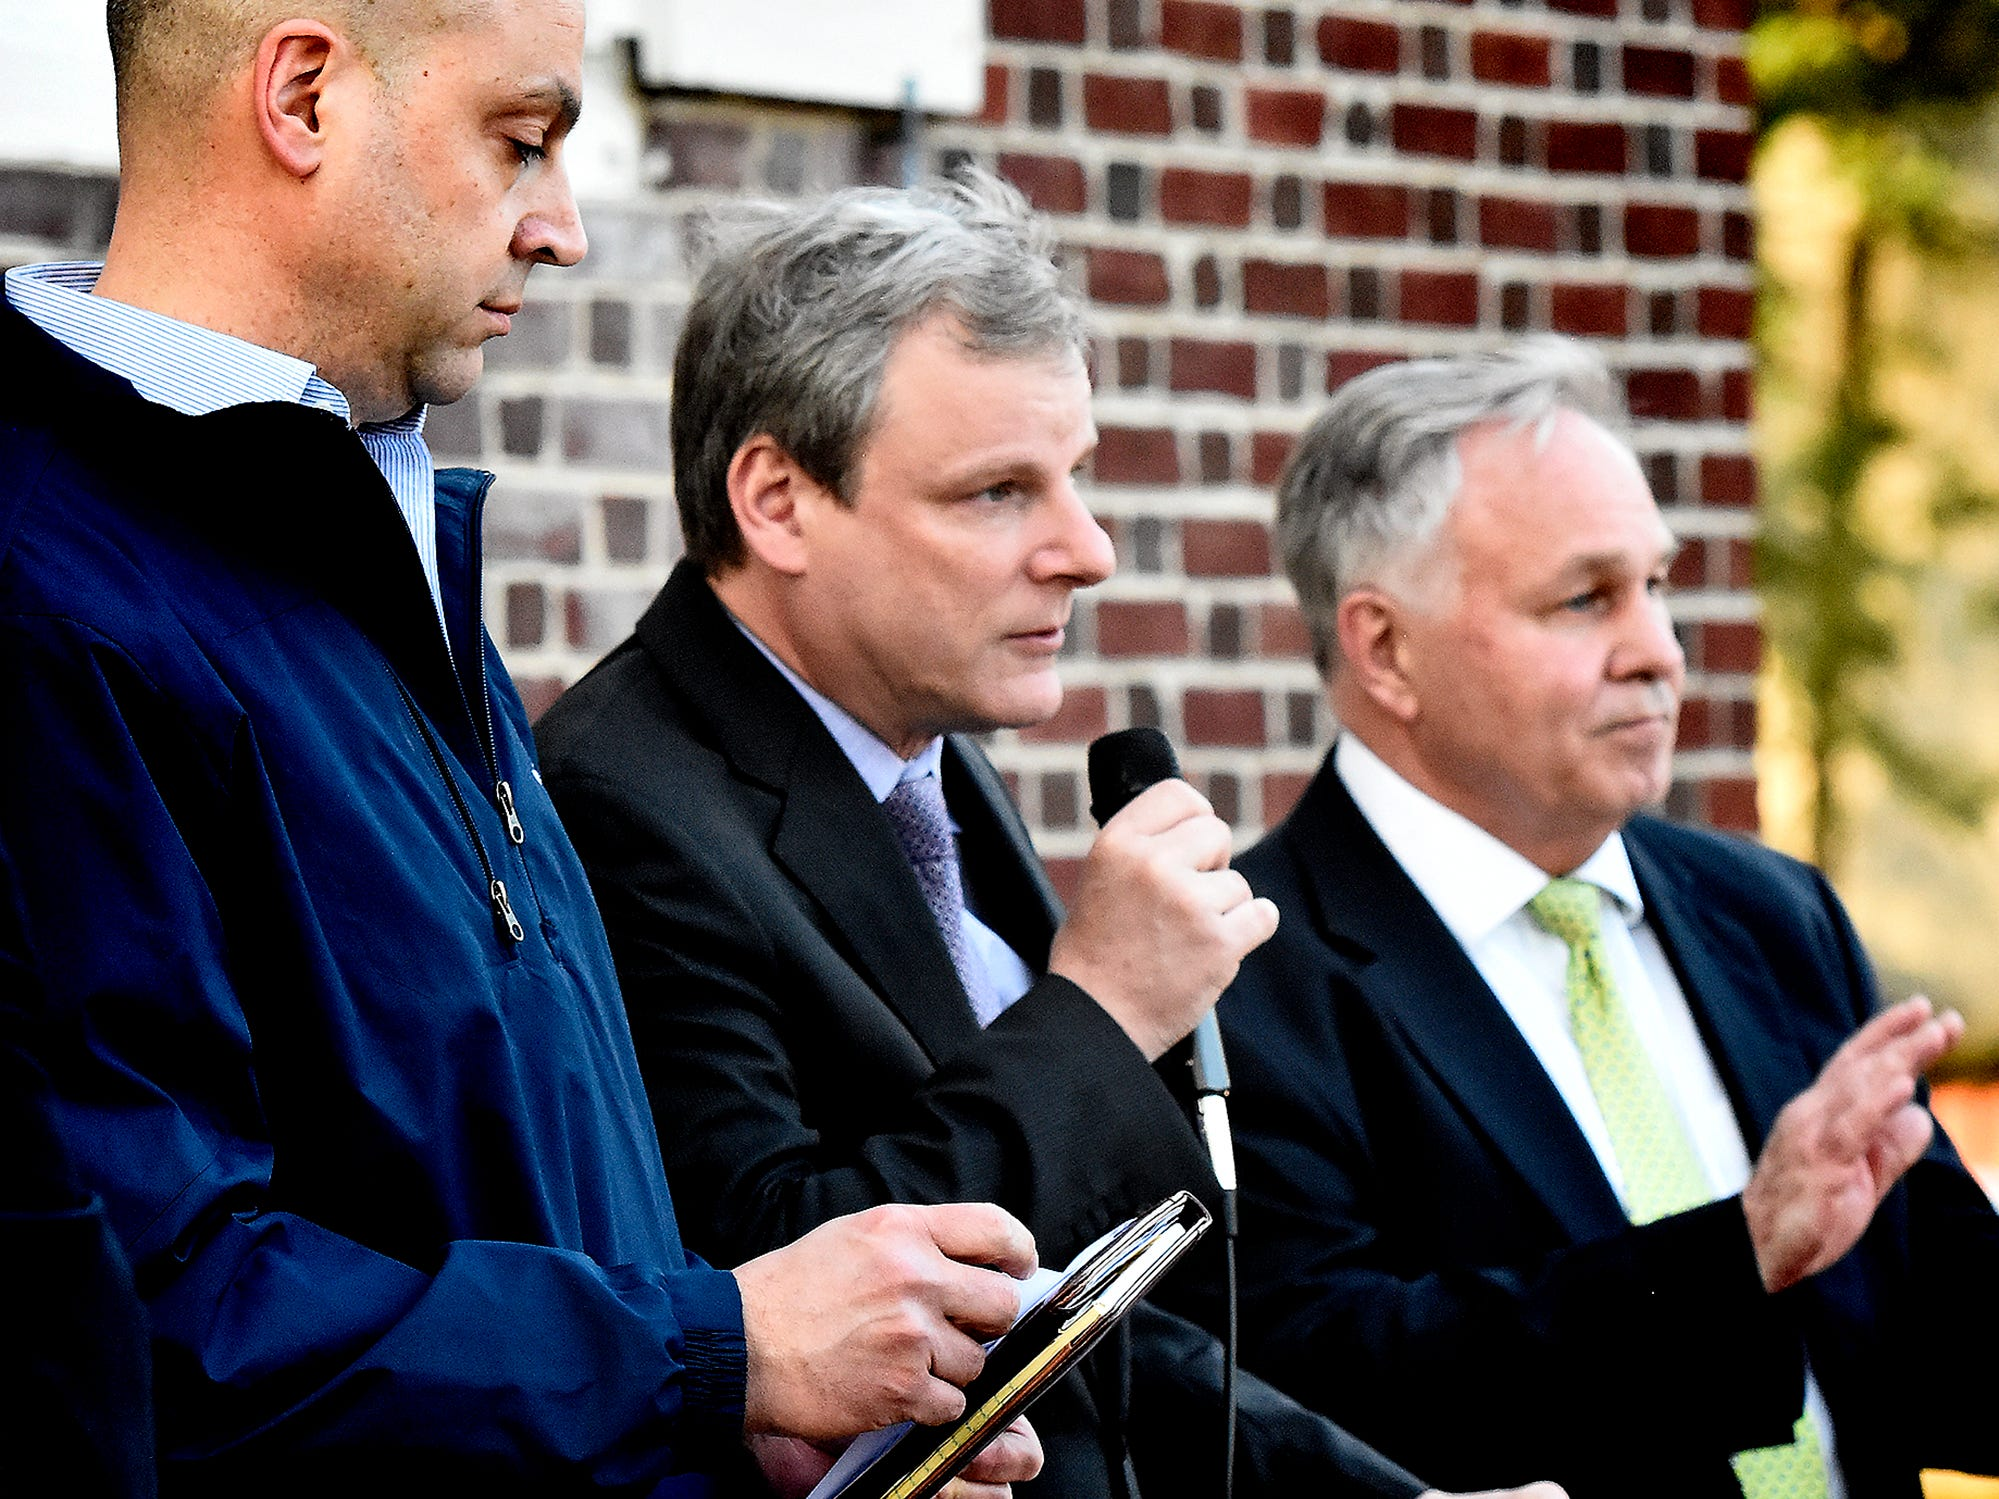 From left, York County District Attorney Dave Sunday, York City Mayor Michael Helfich and York County Commissioner Doug Hoke present a proclamation during a gathering  at the Colonial Courthouse during the 33rd annual Crime Victims' Rights March and Candlelight Vigil Tuesday, April 9, 2019. Participants gathered at the courthouse for a presentation before marching to Trinity United Church of Christ for a ceremony and candlelight vigil. The York County Victims' Rights Coalition sponsored the event to coincide with National Crime Victims' Rights Week. Bill Kalina photo